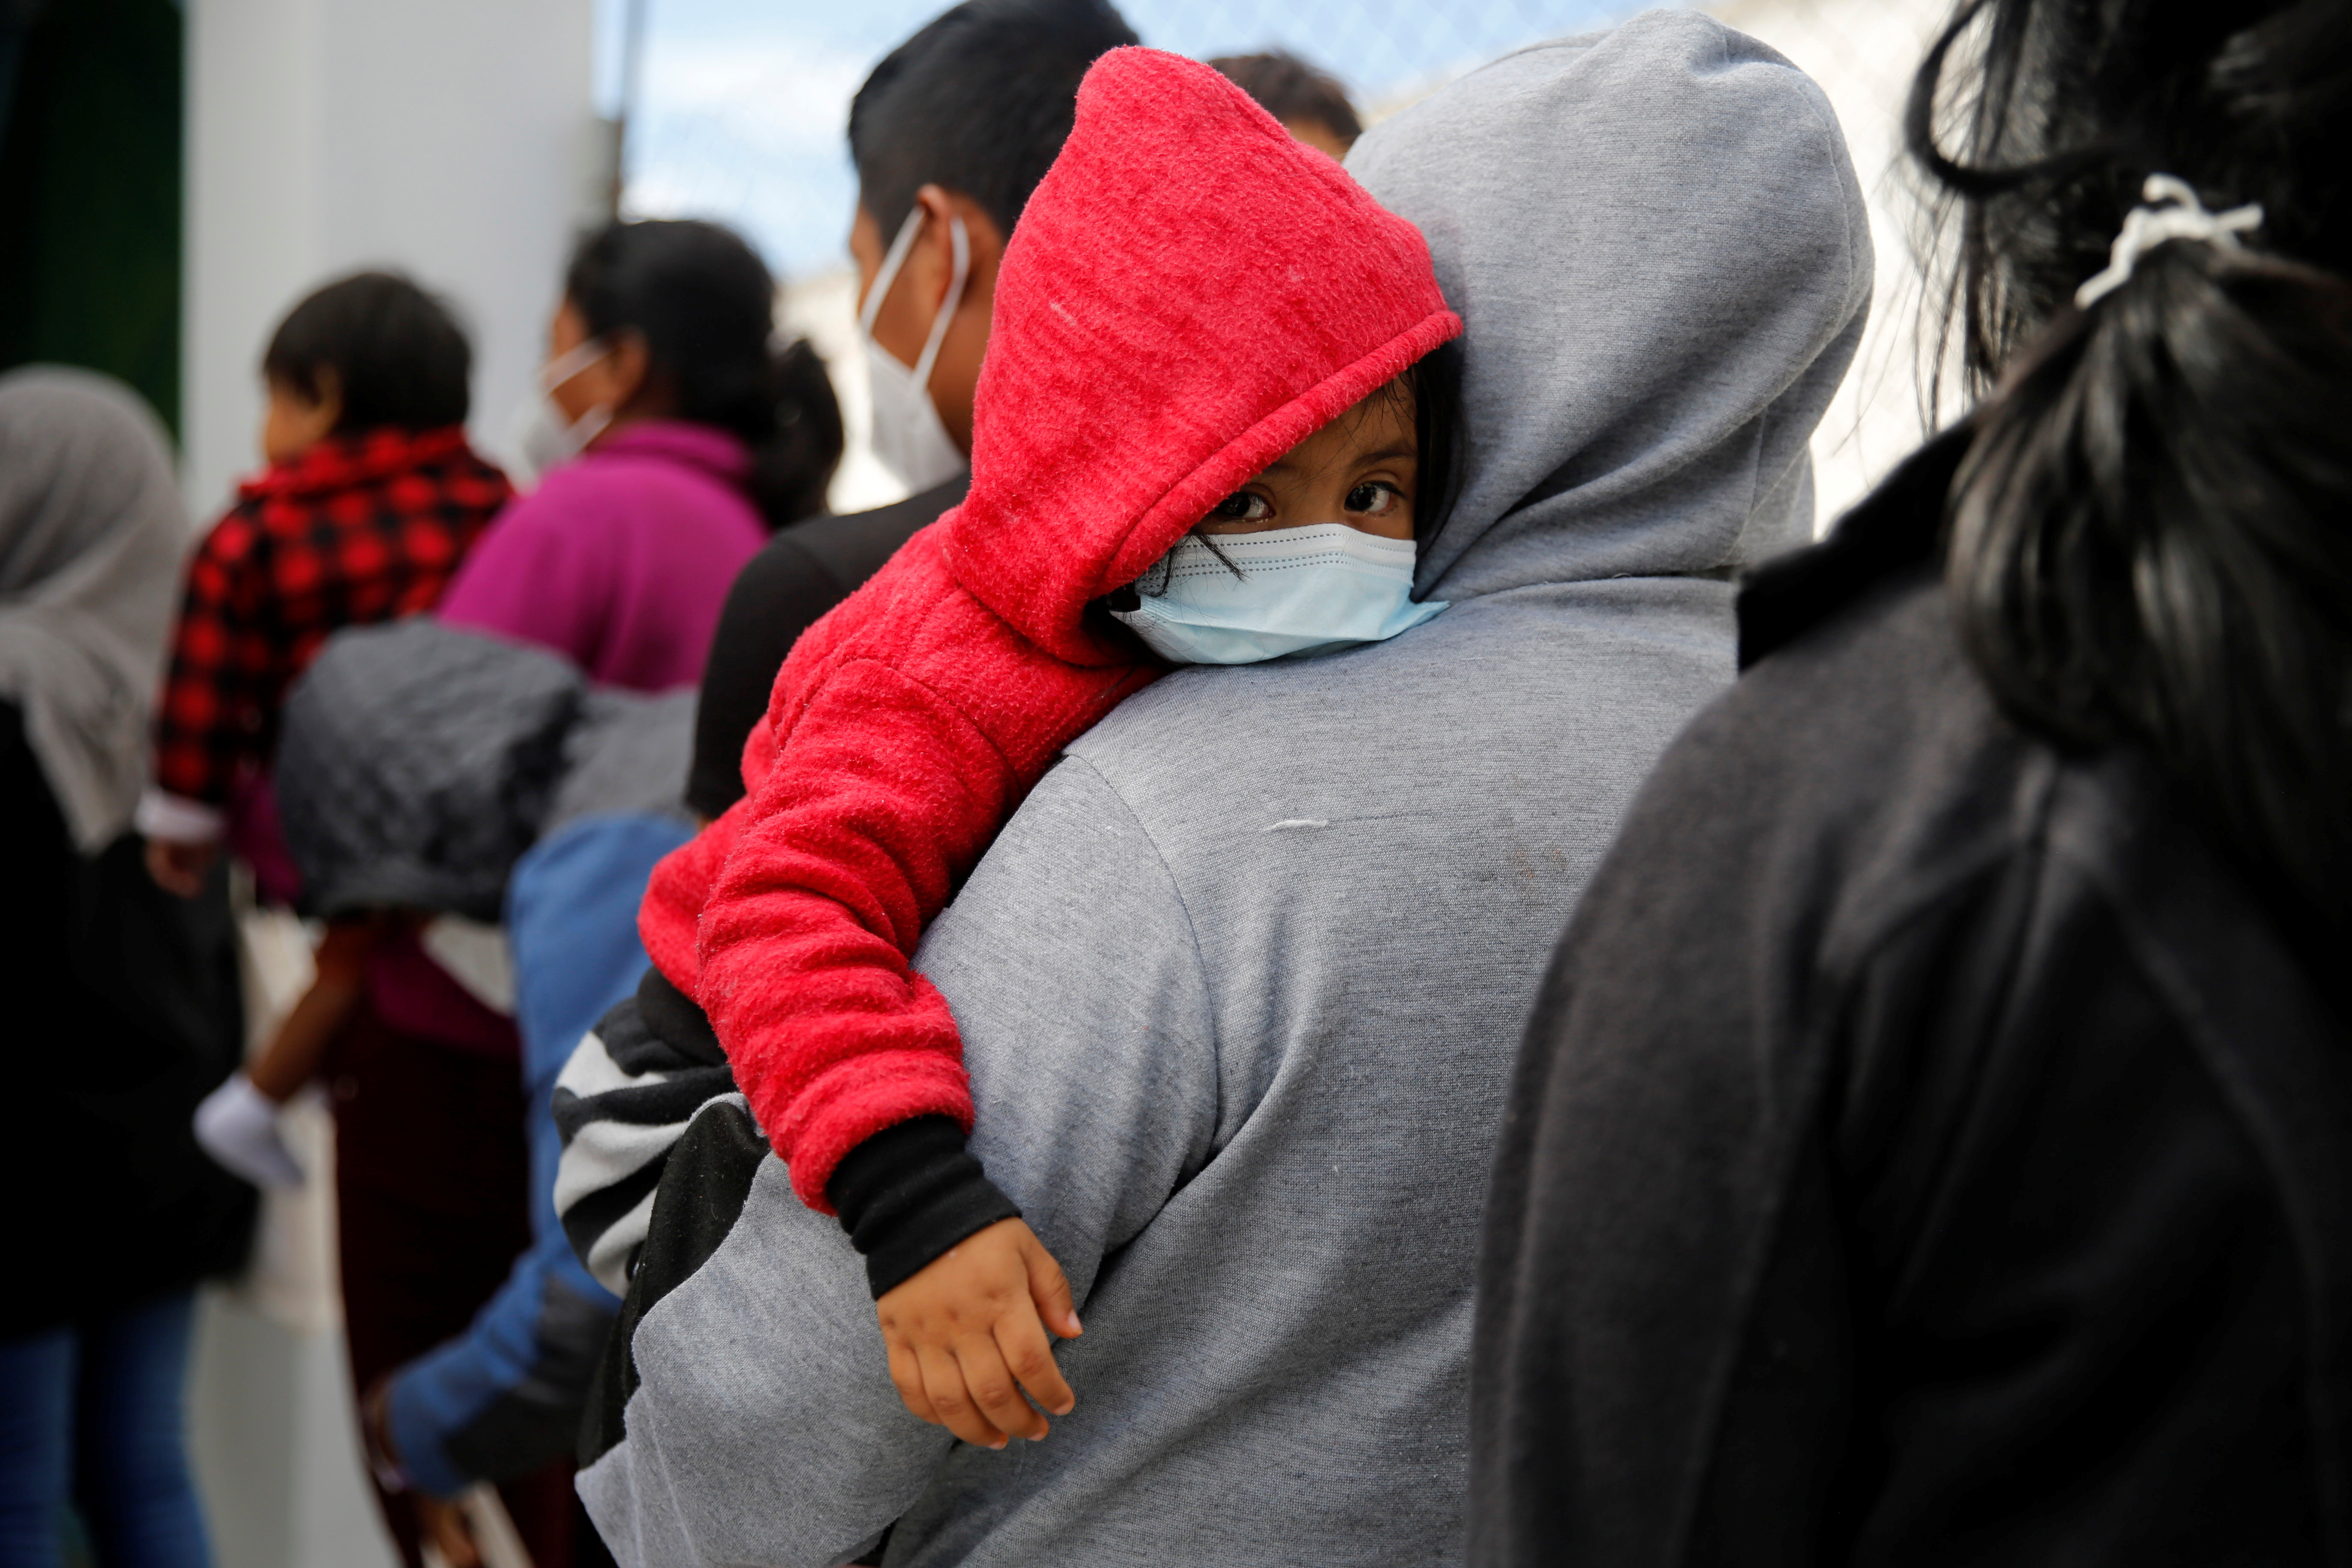 Families queue at a migration facility after being deported from the U.S. under Title 42 as part of the efforts of the U.S. government to expedite removals of some families to dissuade record numbers of migrants from making the journey north, at the La Aurora International airport in Guatemala City, Guatemala August 4, 2021. REUTERS/Luis Echeverria